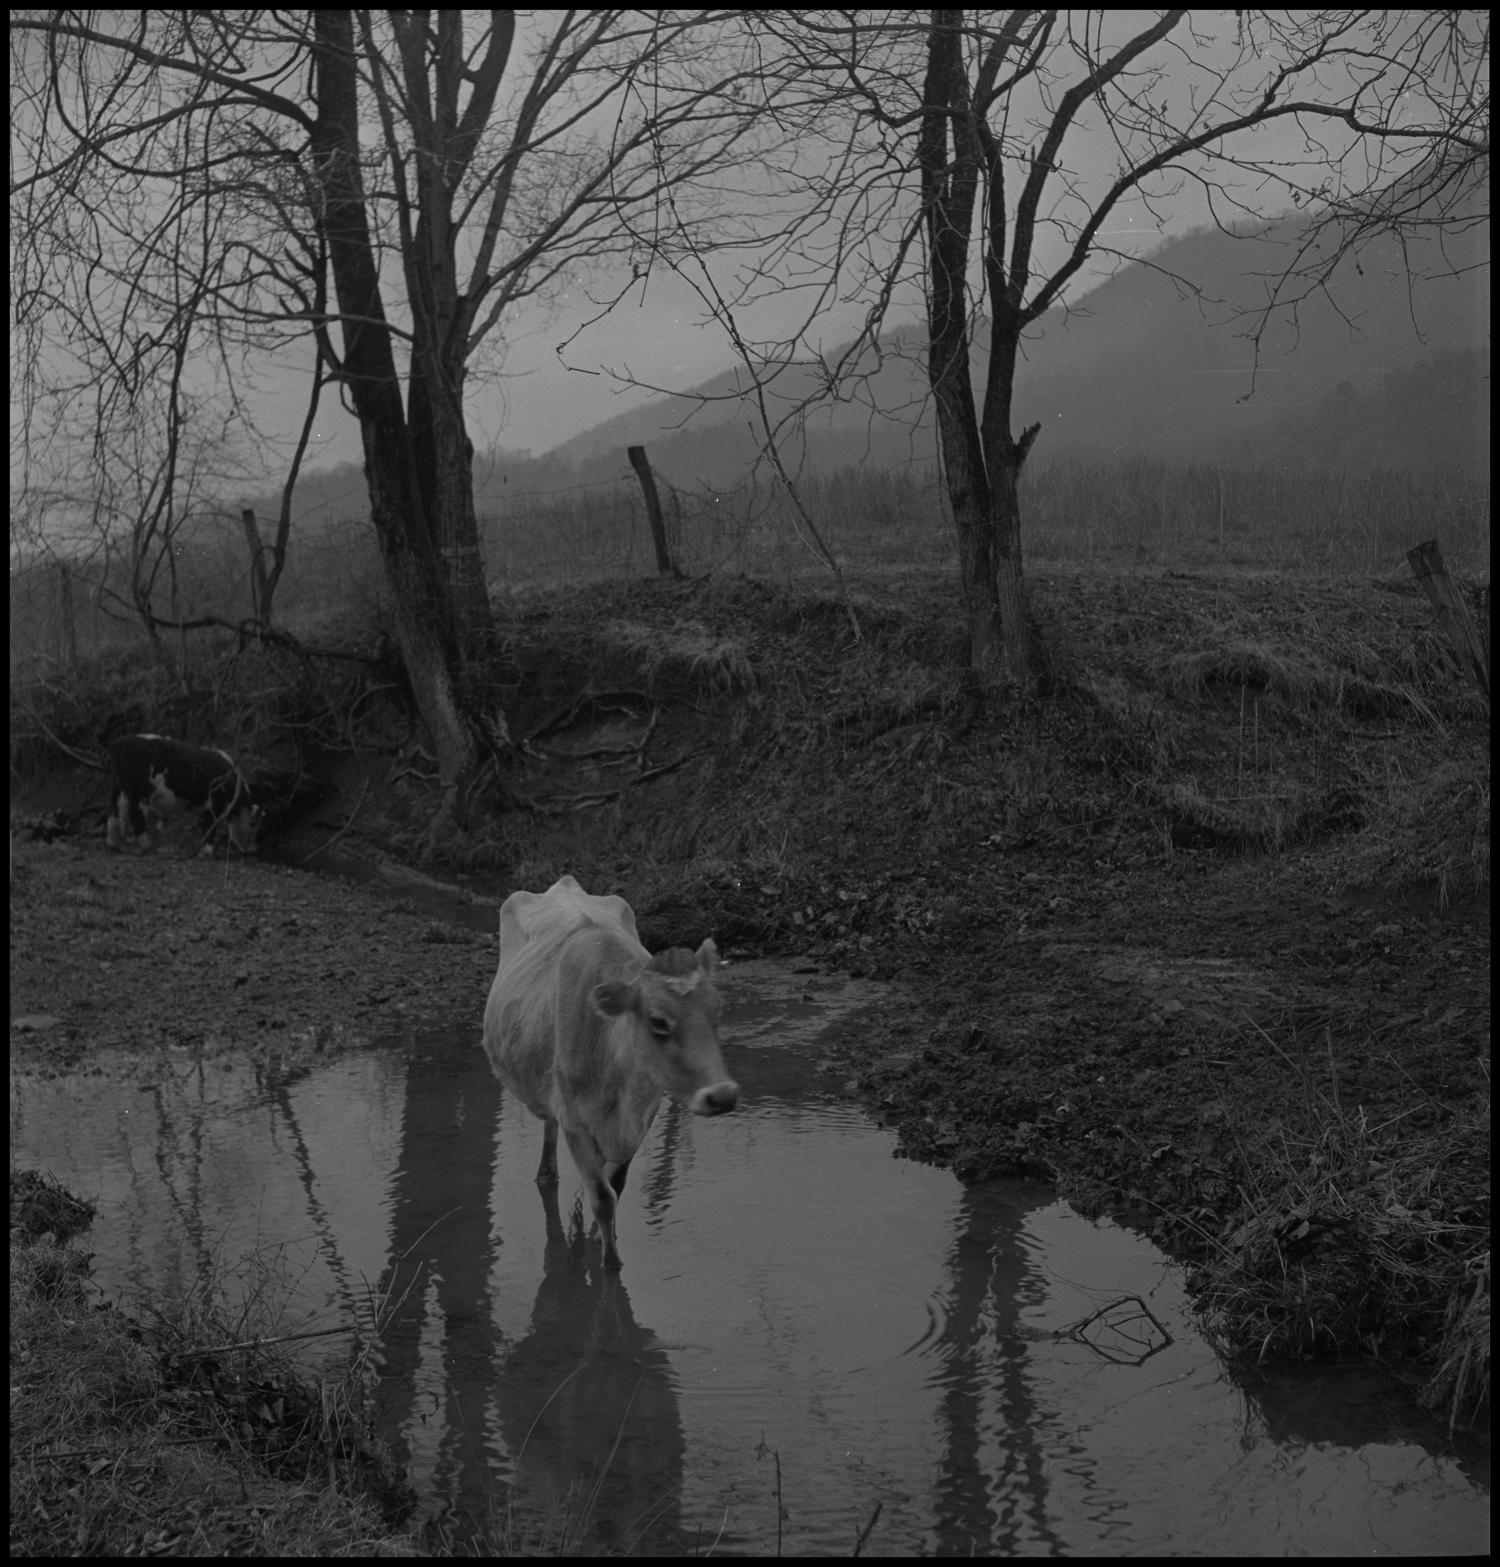 [Cow in water], Photograph of a cow standing in a small water hole. In the image, the water hole is from a dip in between trees and a wire fence can be seen behind them.,